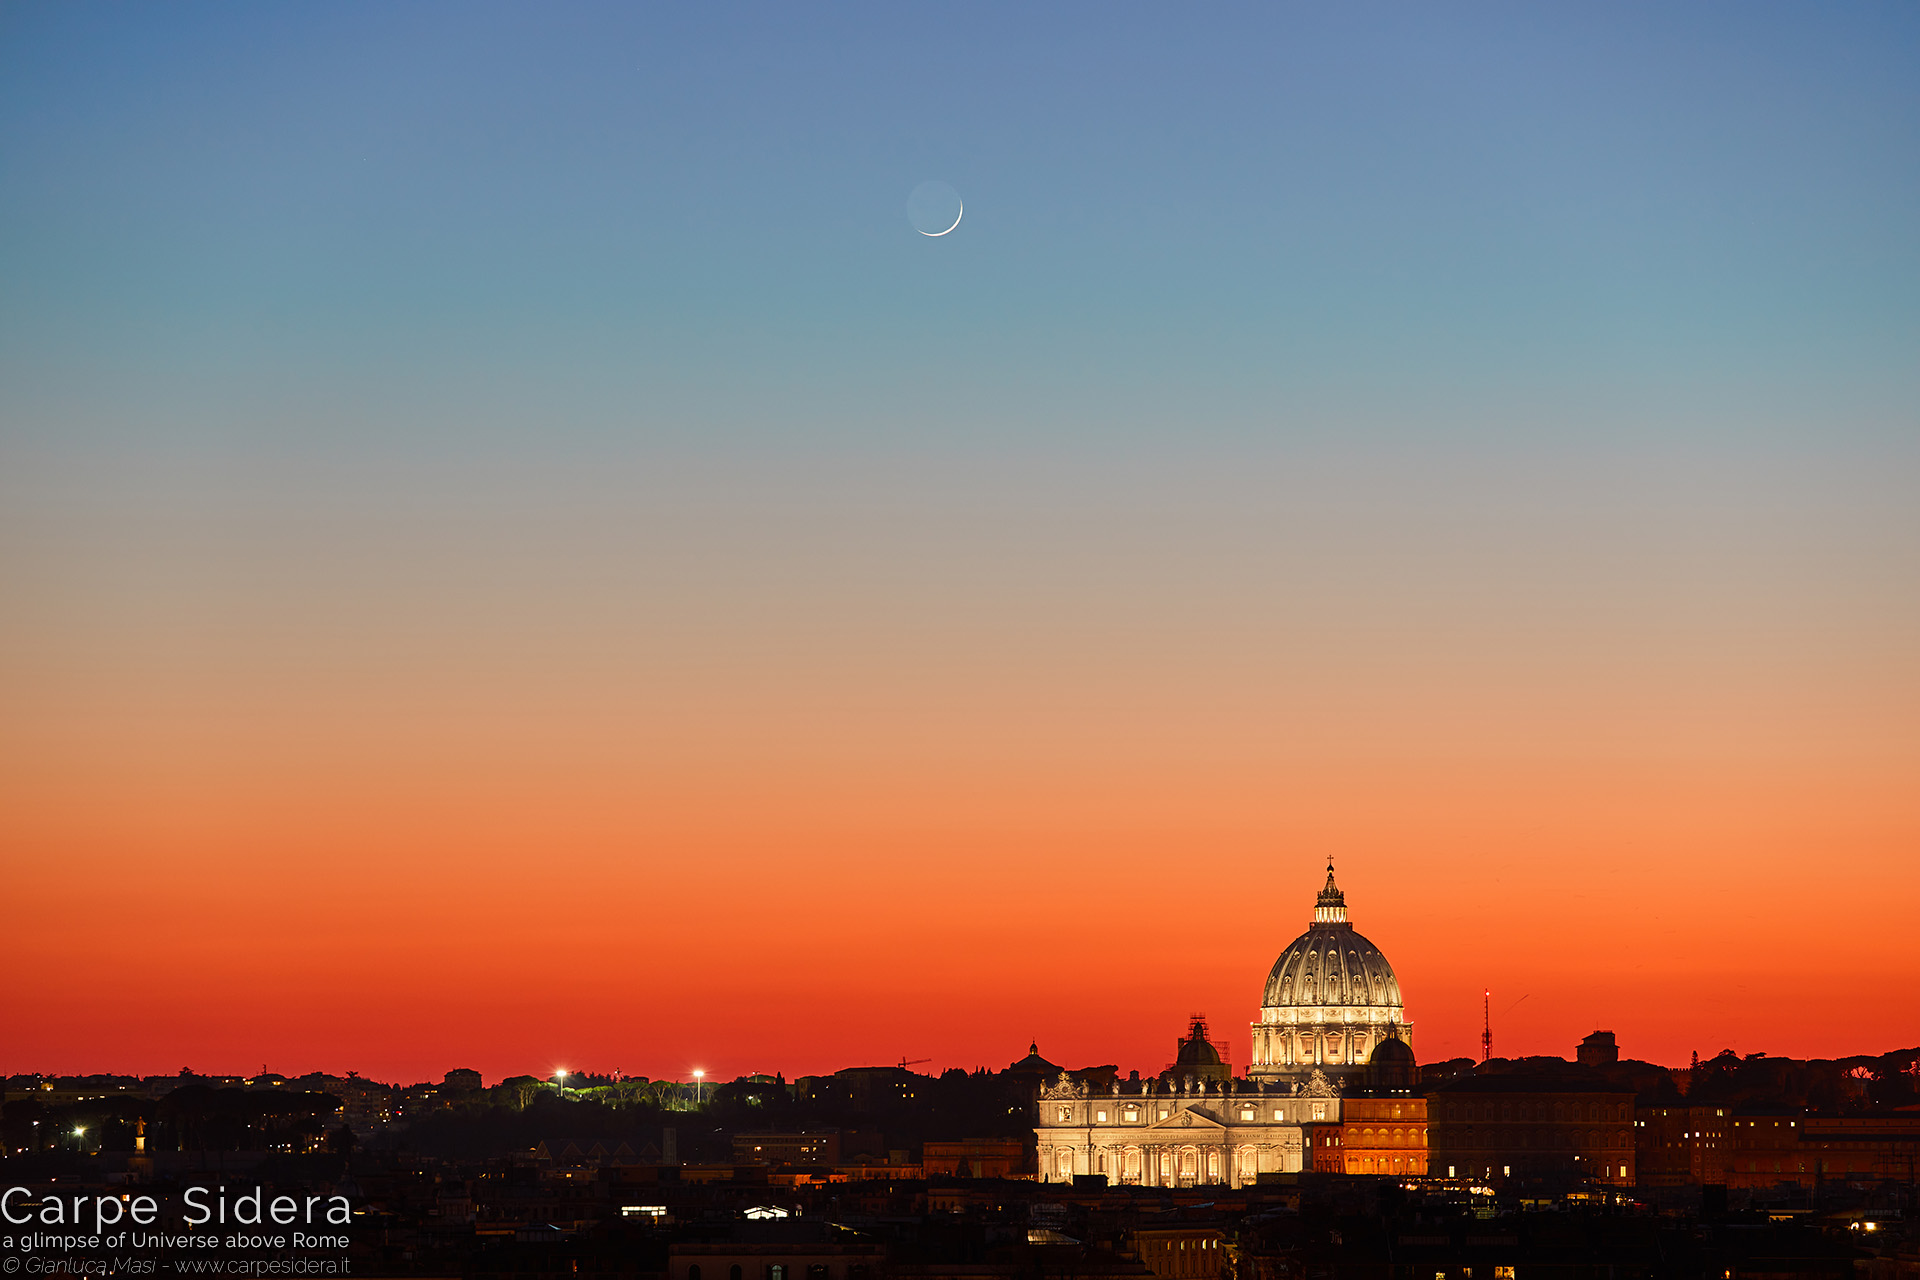 16. A sharp Moon crescent shines above the dome of St. Peter's, at sunset.